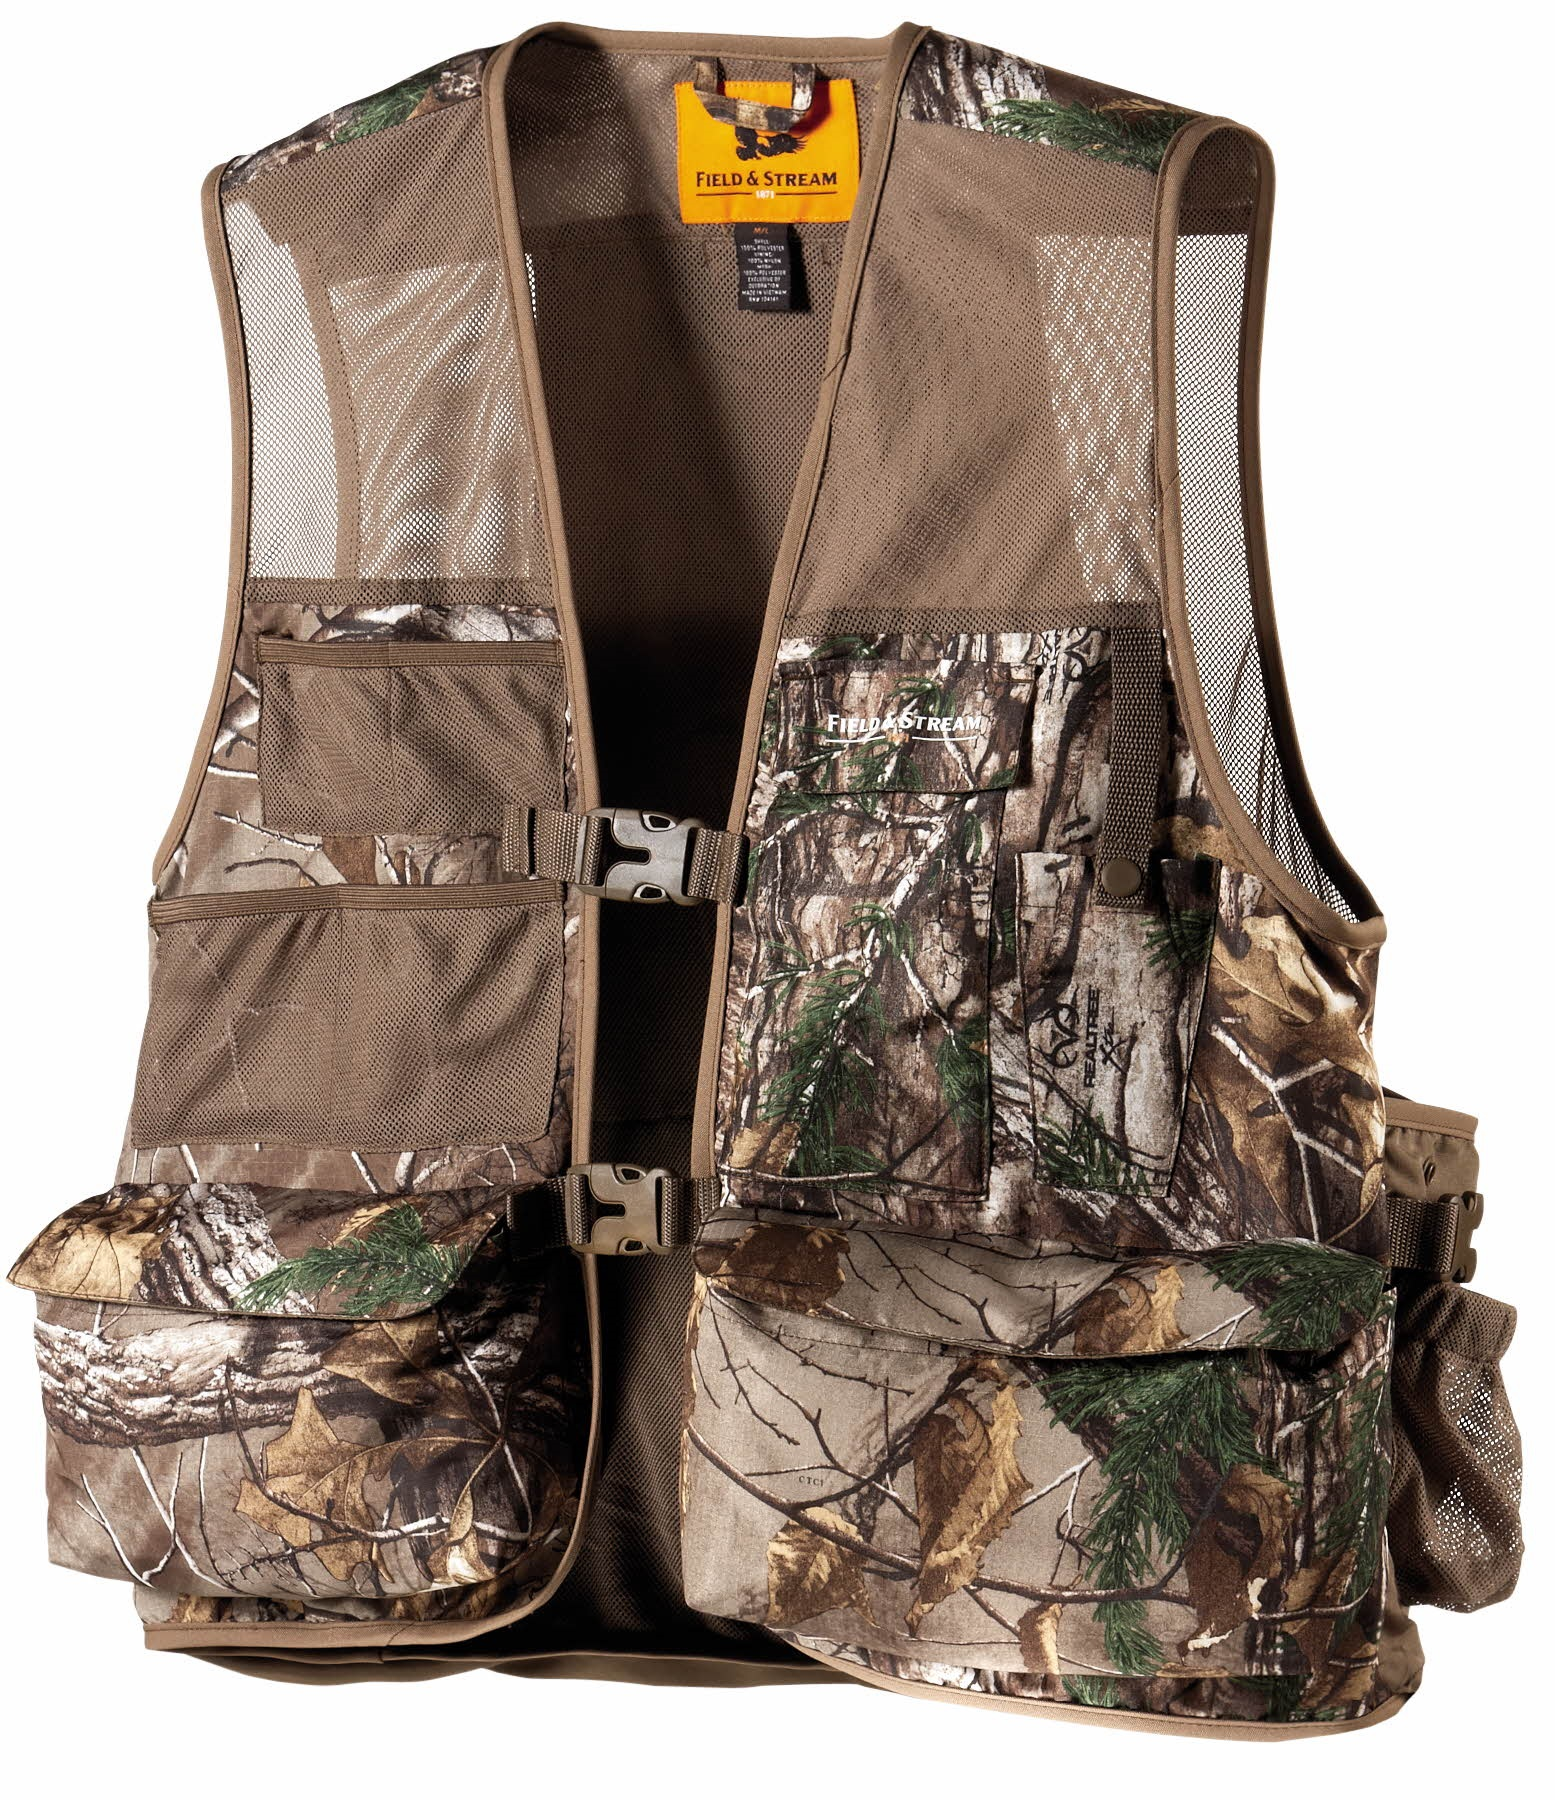 predator hunting chair cheap cool chairs field and stream everyhunt turkey vest in realtree xtra